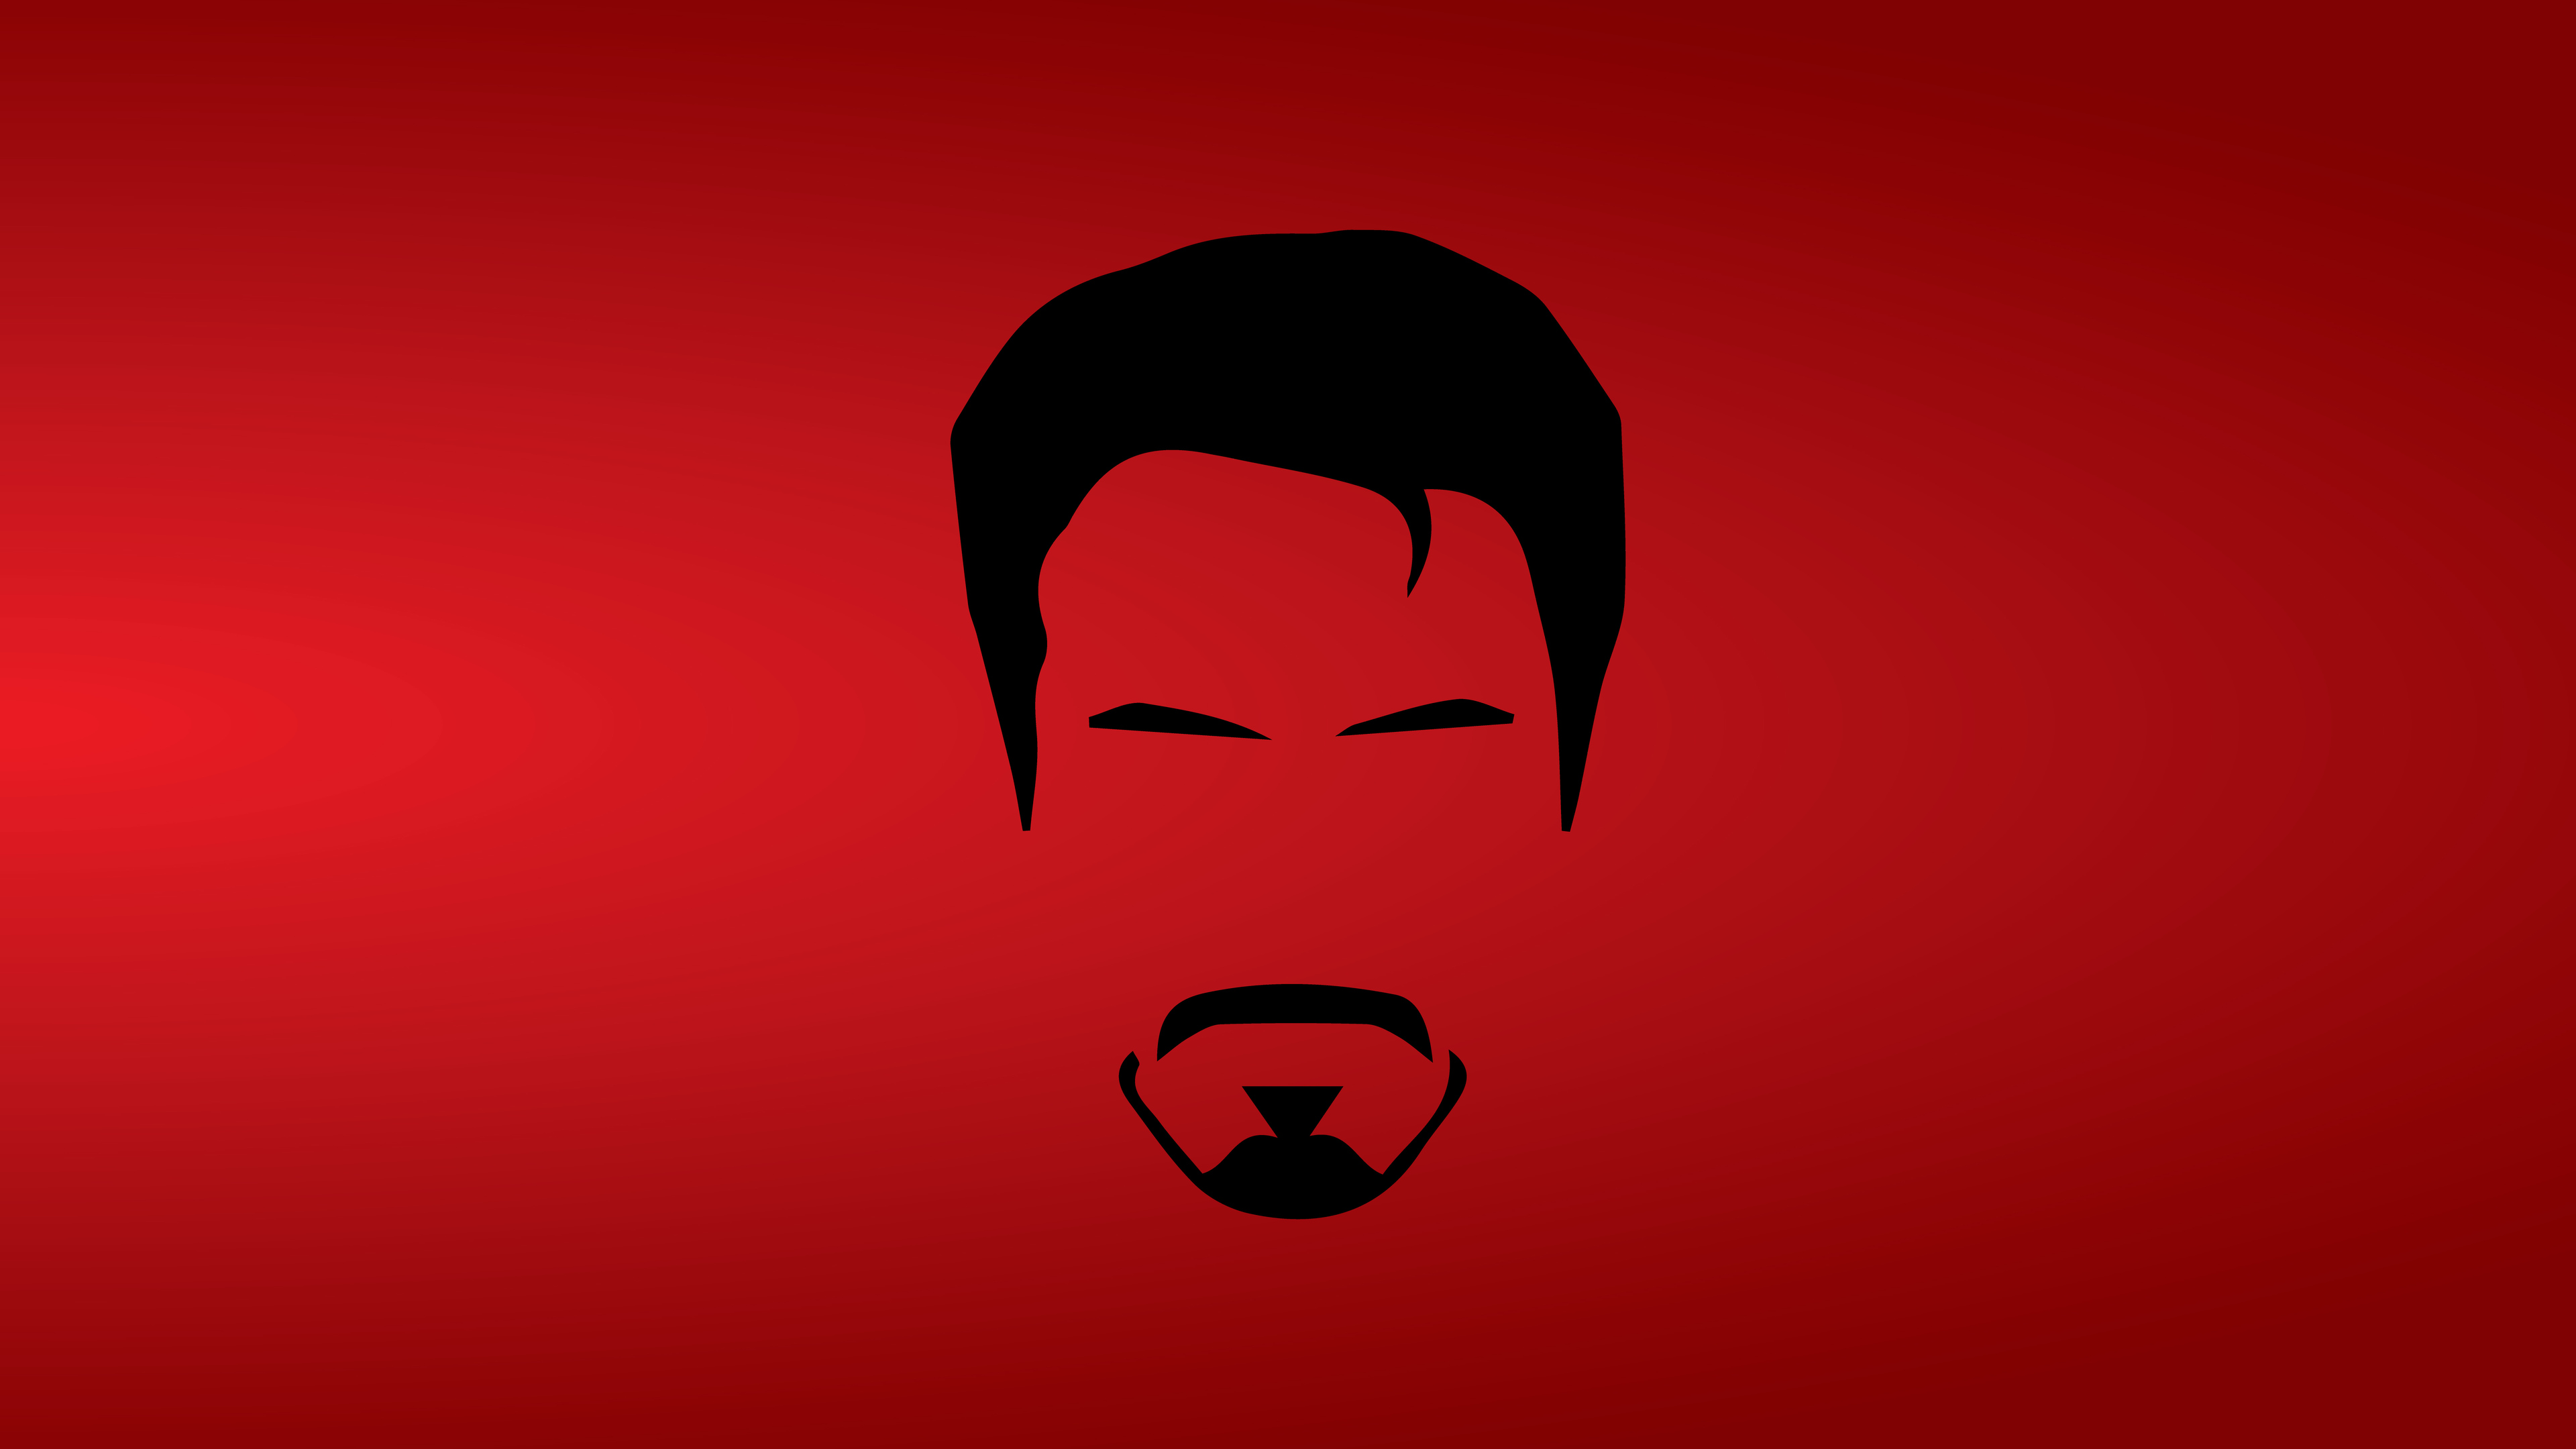 Tony Stark Minimalist 8k Superheroes Wallpapers, Red